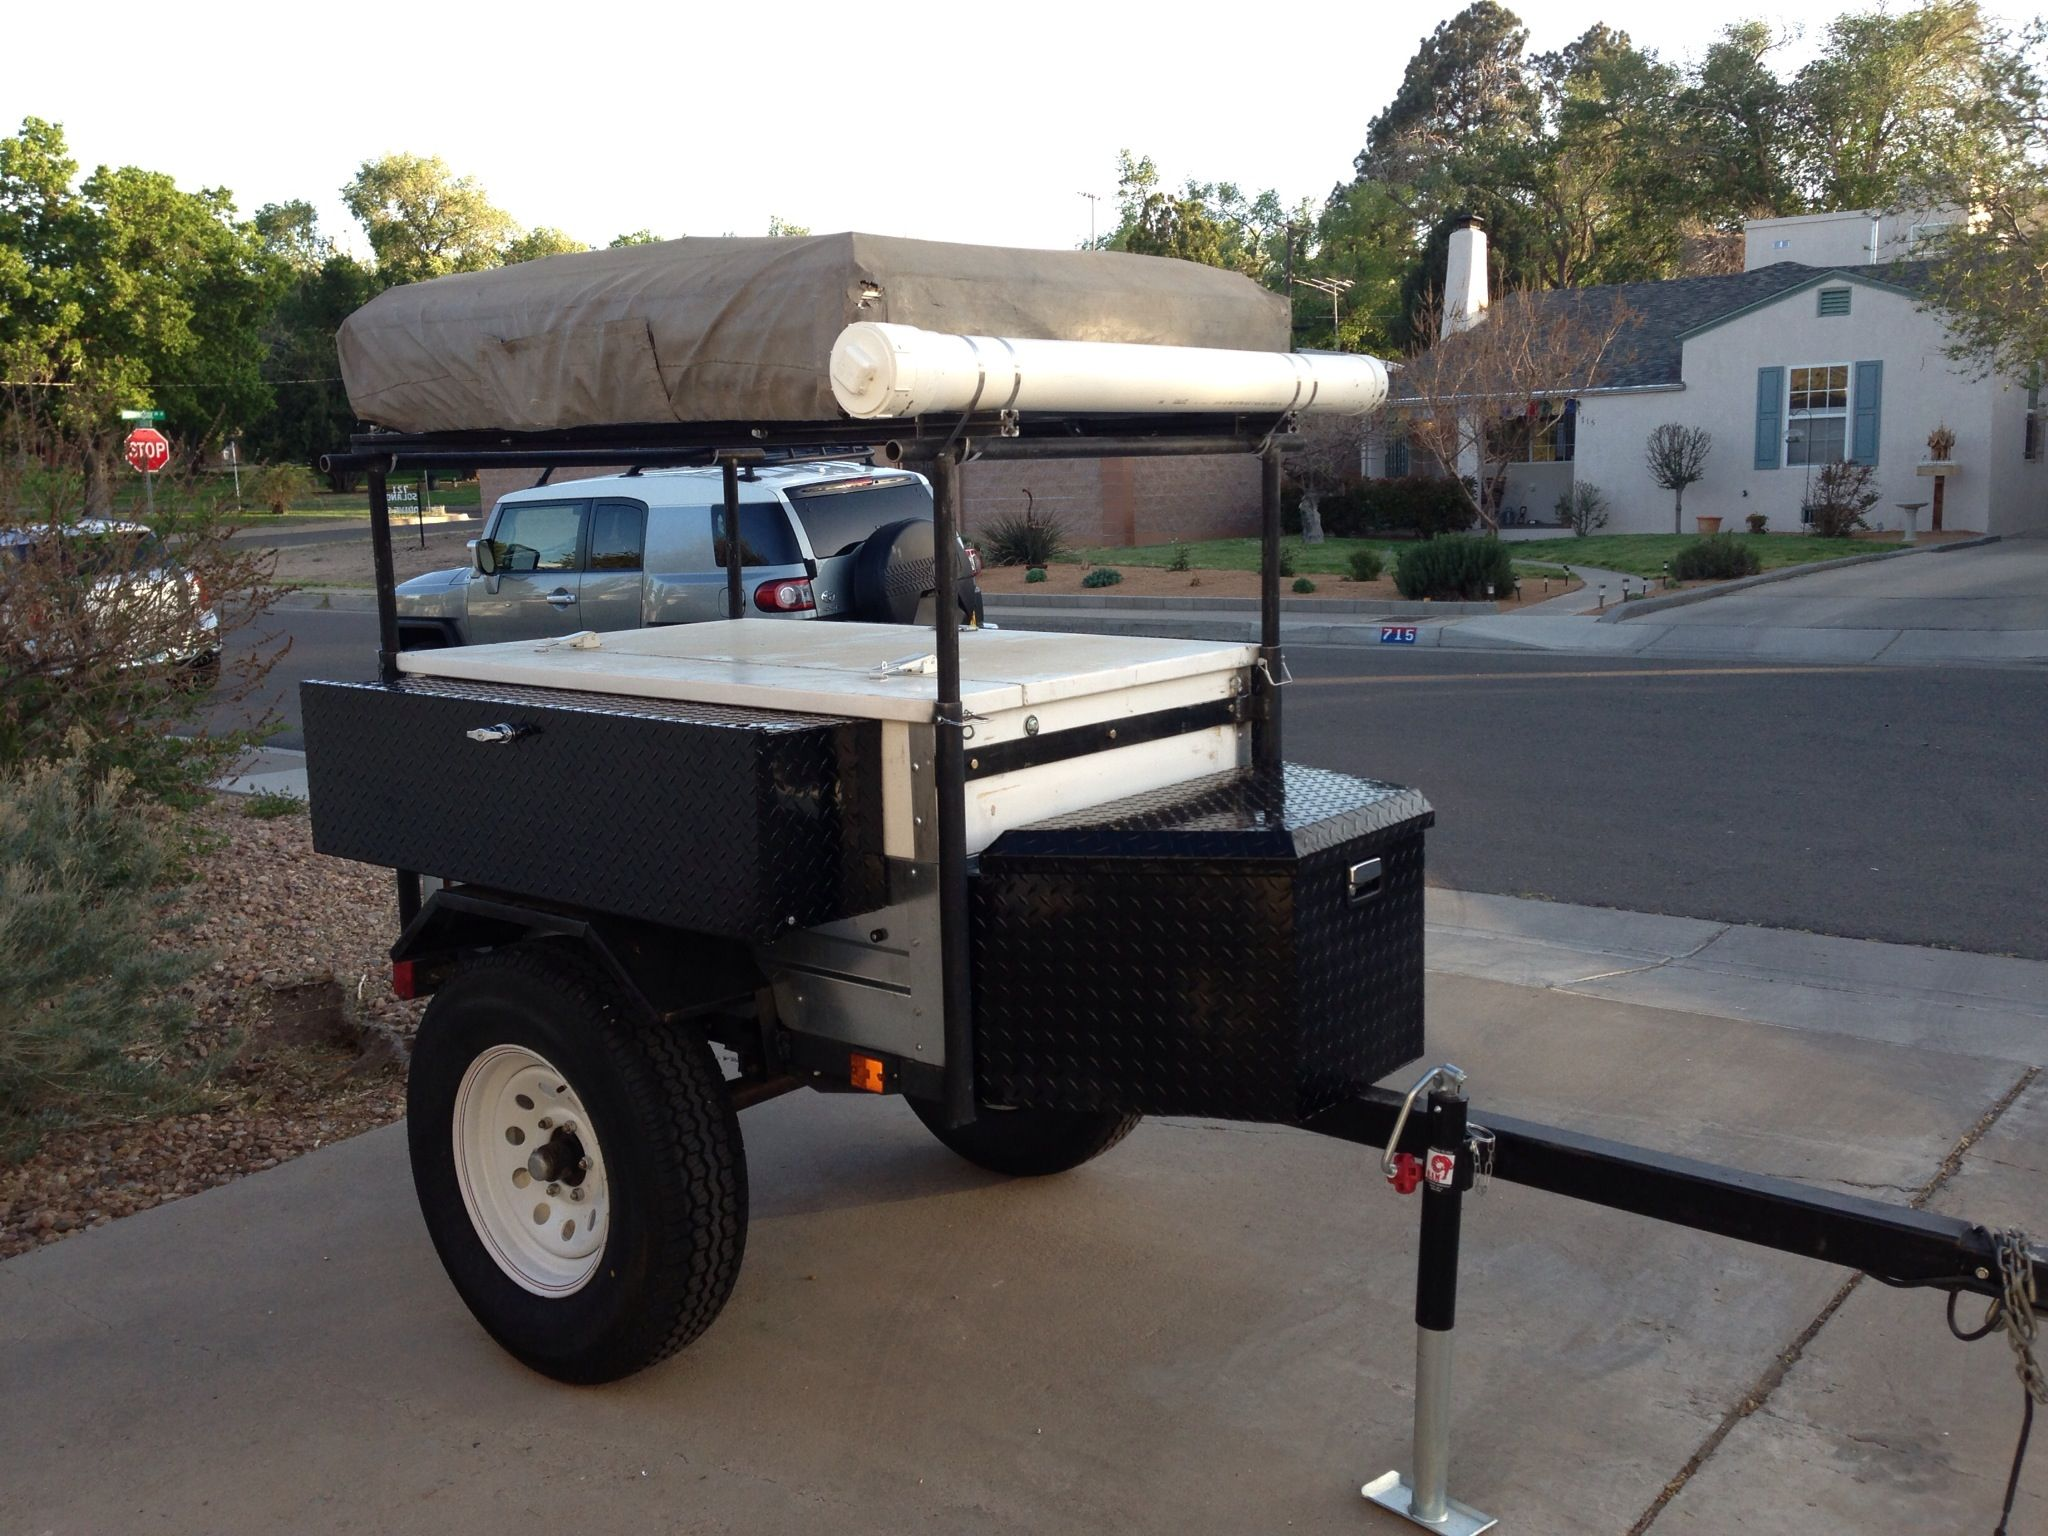 Diy Truck Camper Expidition - Year of Clean Water